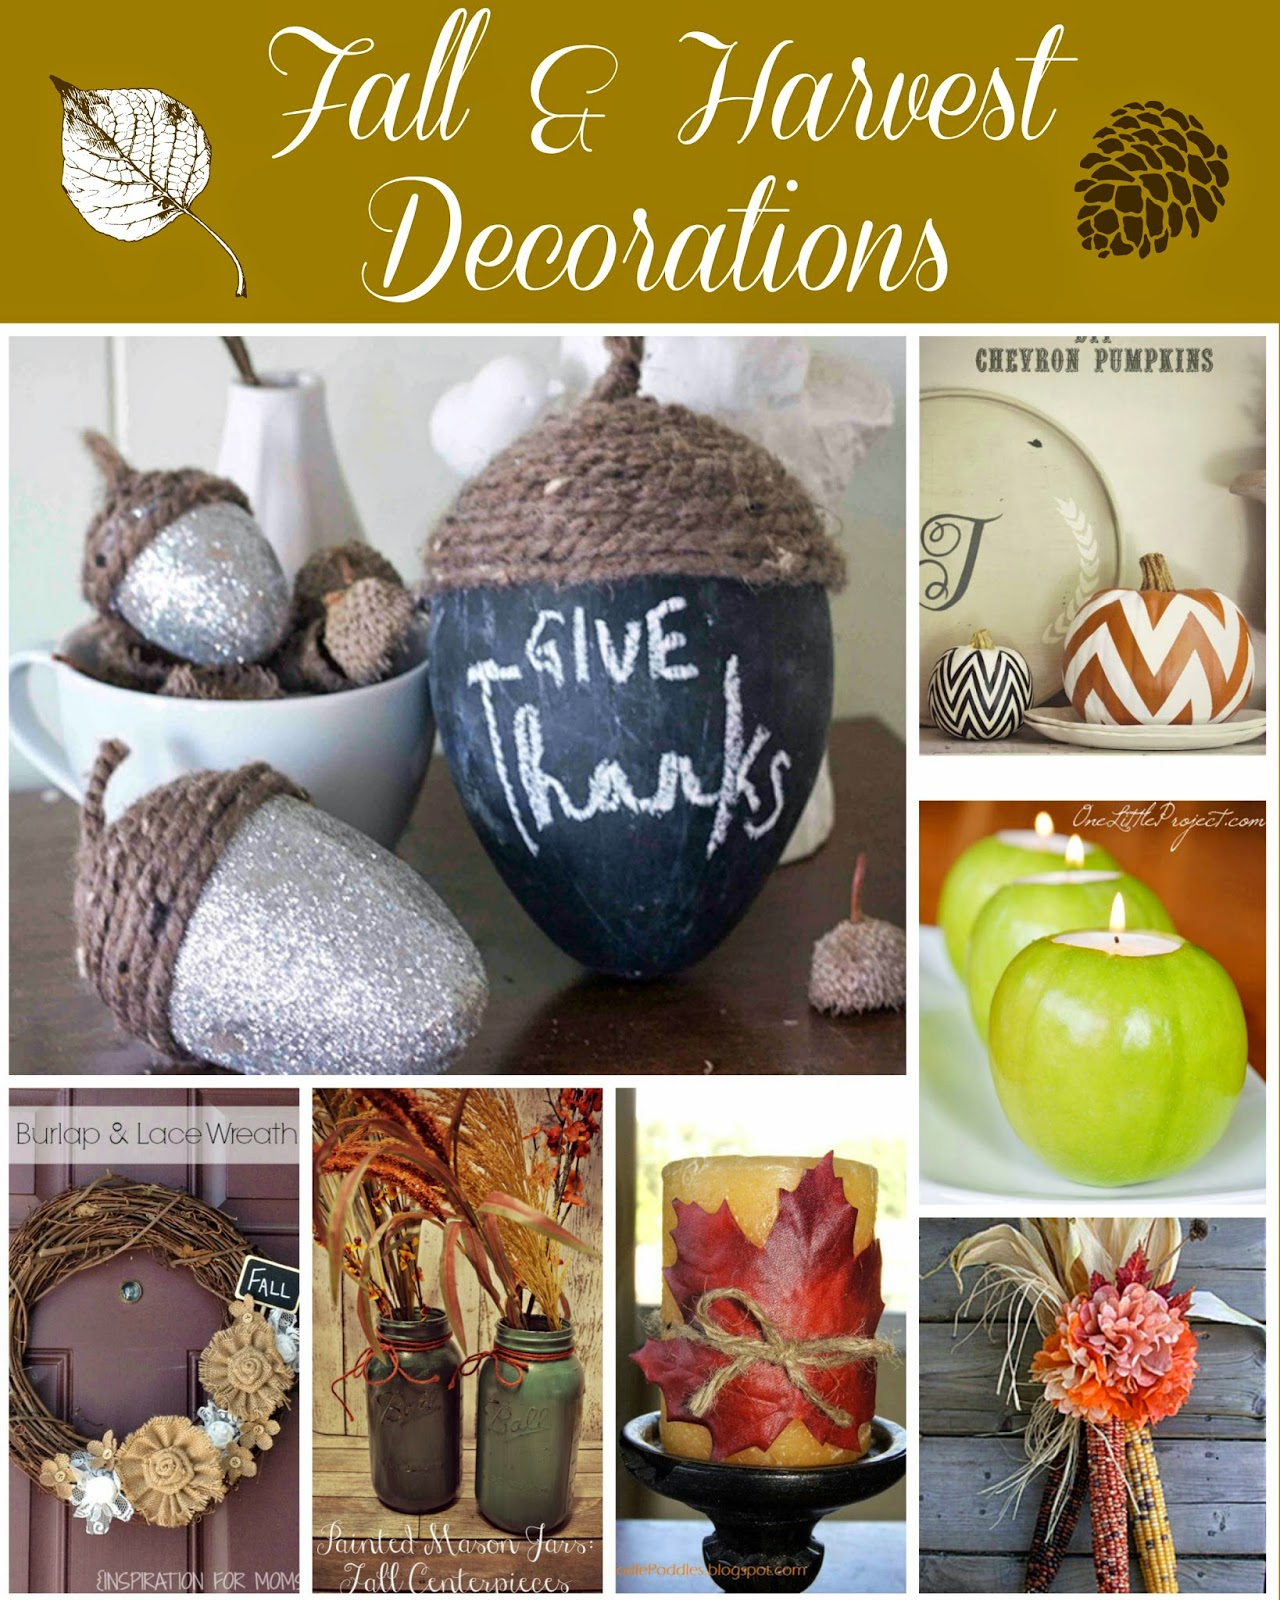 Harvest Home Decor #DIY Ideas.  Easy Fall Decorations.  Harvest Decorations DIY fall decorations.